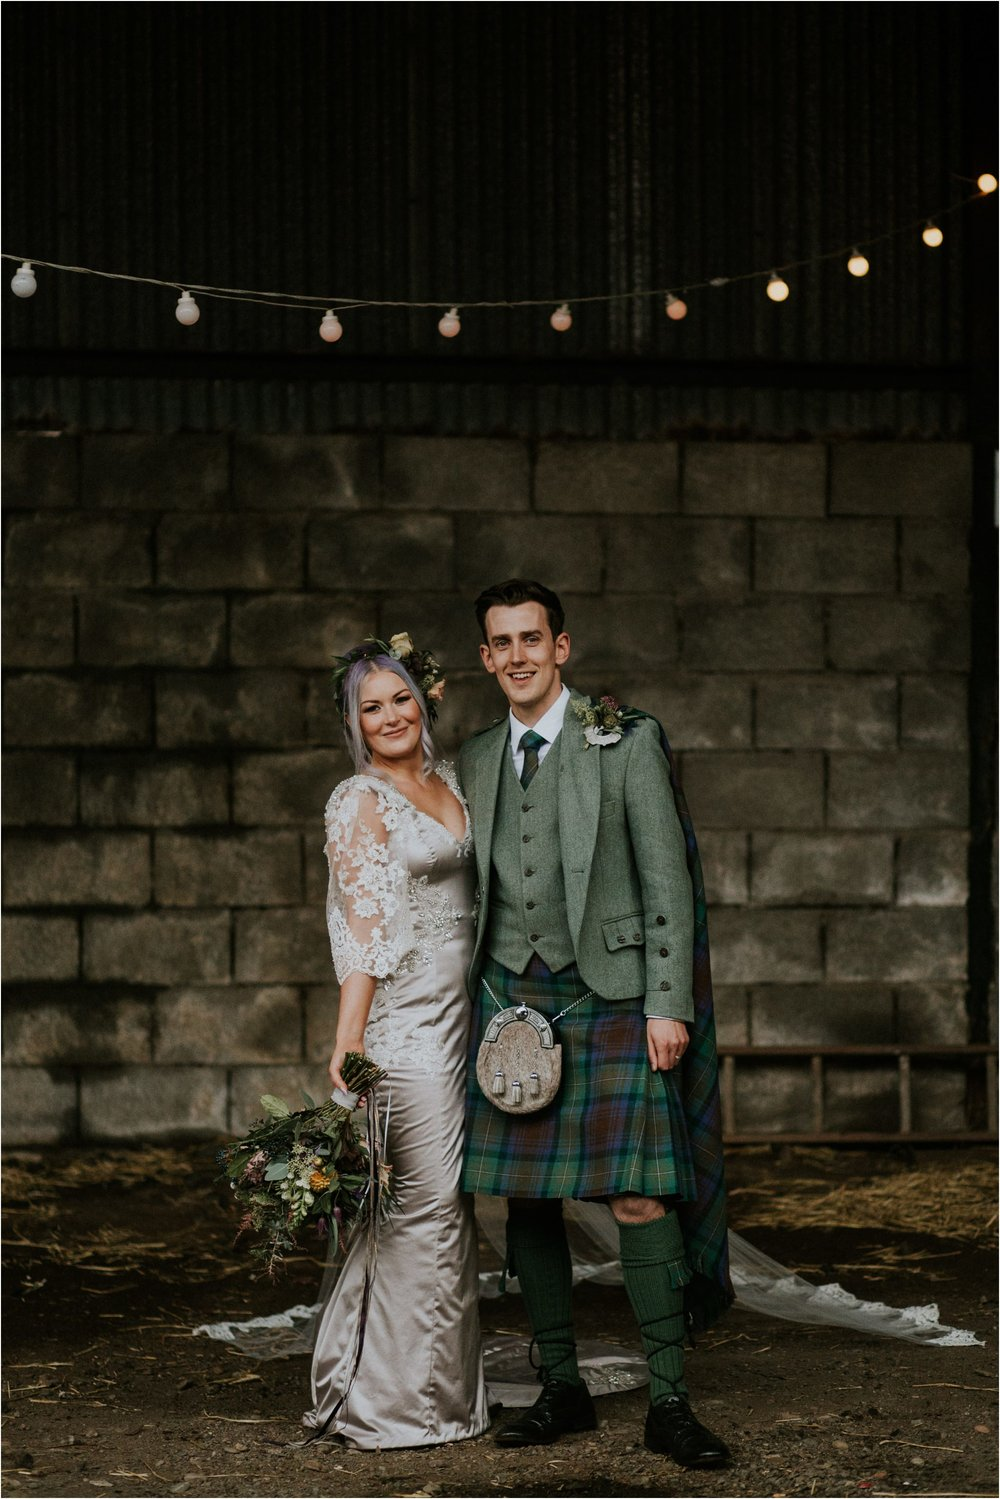 Photography 78 - Glasgow Wedding Photographer - Pete & Eilidh - Dalduff Farm_0057.jpg